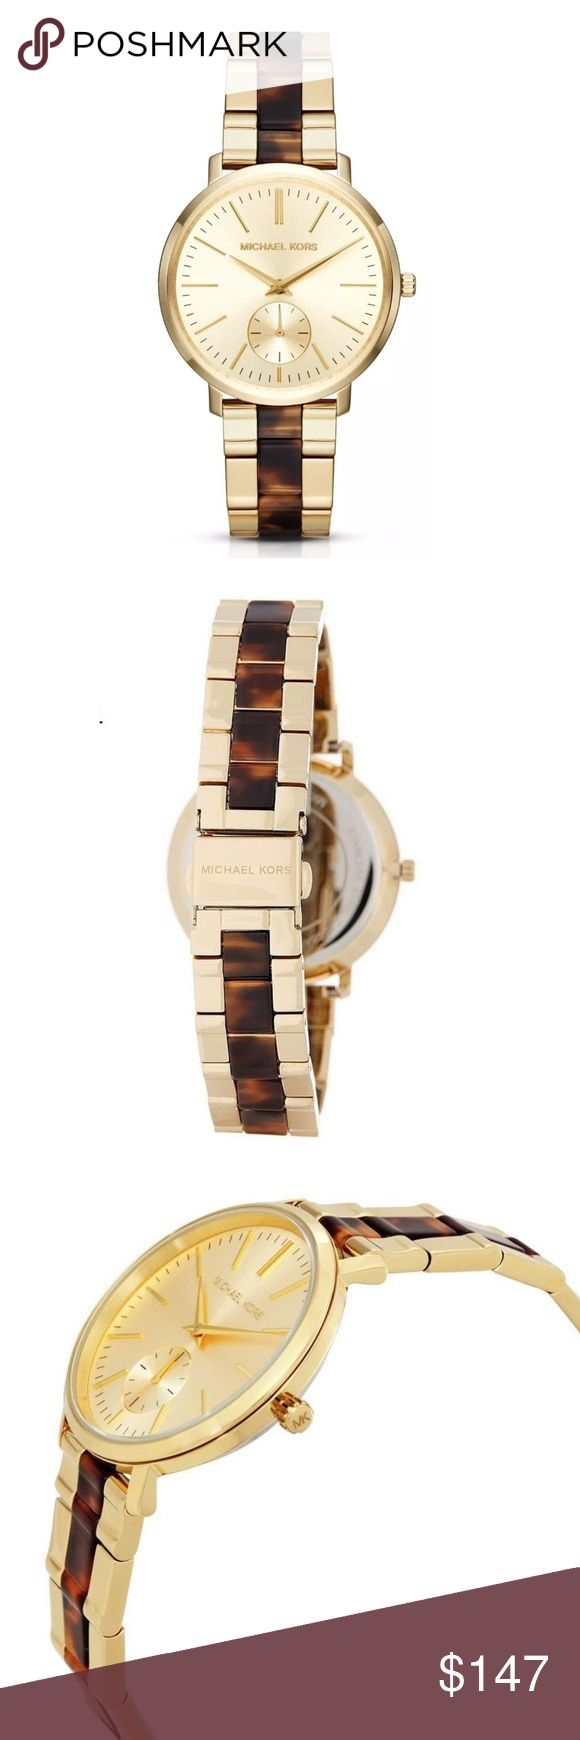 Michael Kors Women's Jaryn Gold Bracelet Watch Michael Kors Women's Jaryn Gold Tone Tortoise Acetate Bracelet Watch MK3511  item# 272941344307  100% Authentic Michael Kors!  Buy with confidence!  • MSRP: $275.00  • Style: MK3511  Features:  Gold-tone stainless steel case with a gold-tone stainless steel bracelet with tortoise-shell acetate center links. Fixed gold-tone bezel. Gold dial with gold-tone hands and index hour markers. Minute markers around the outer rim. Dial Type: Analog. 60…